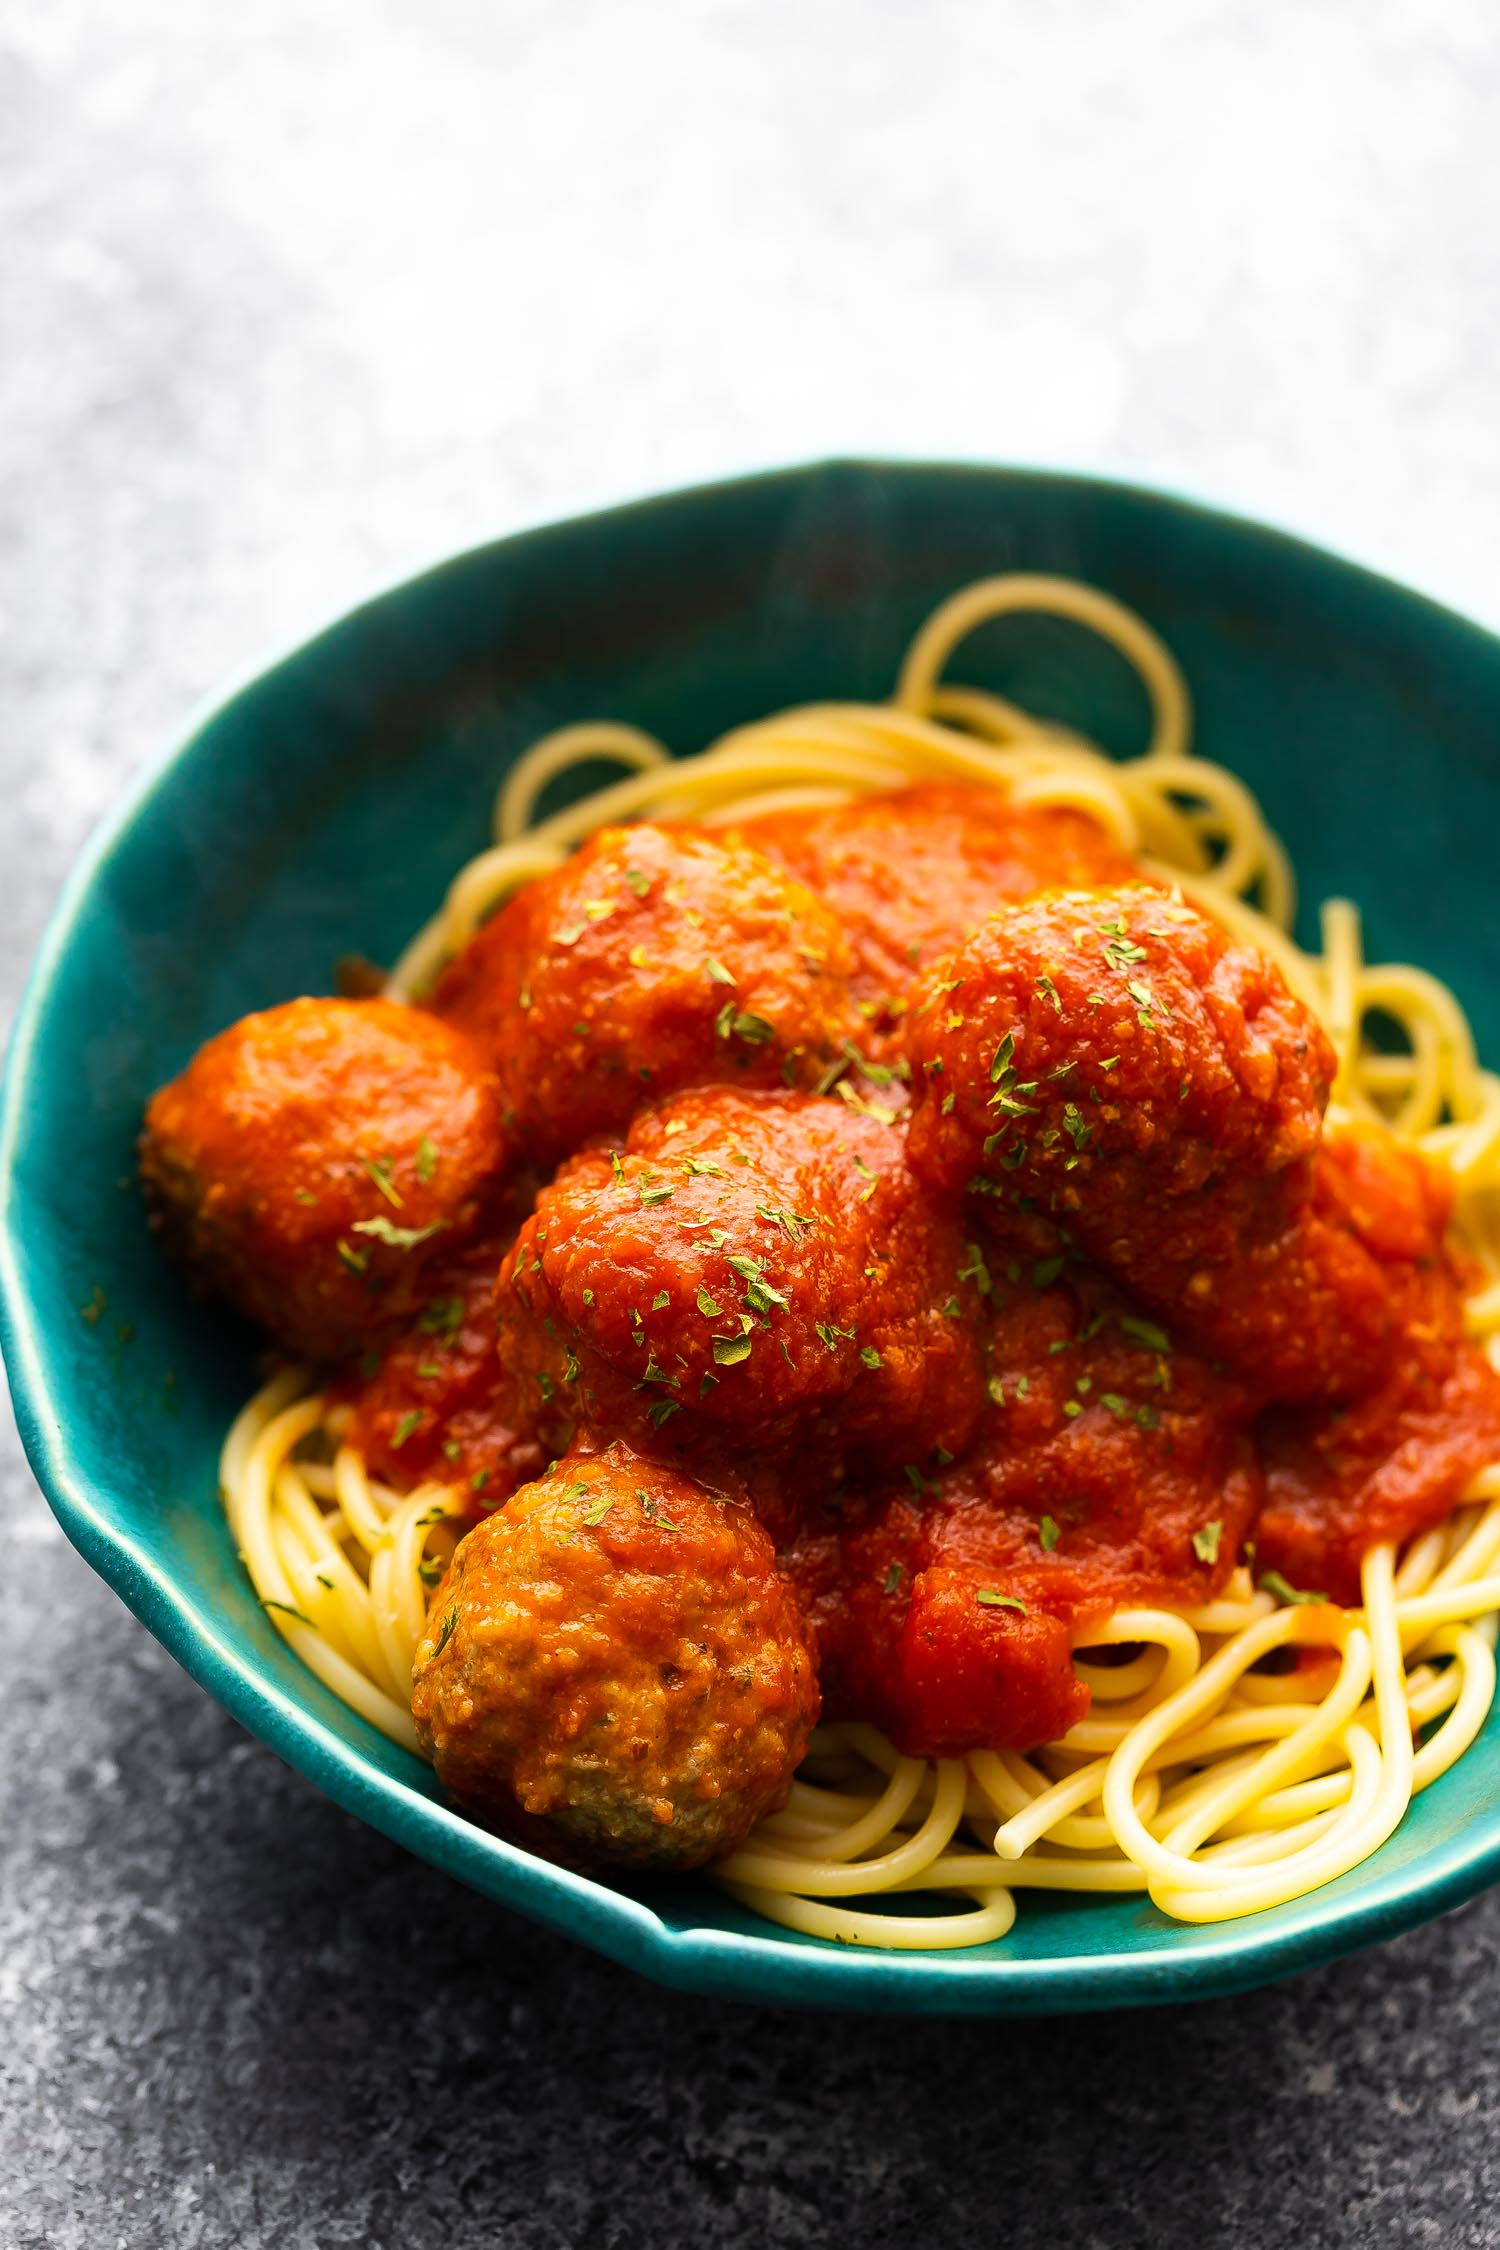 close up shot of meatballs on a bed of. spaghetti in blue bowl